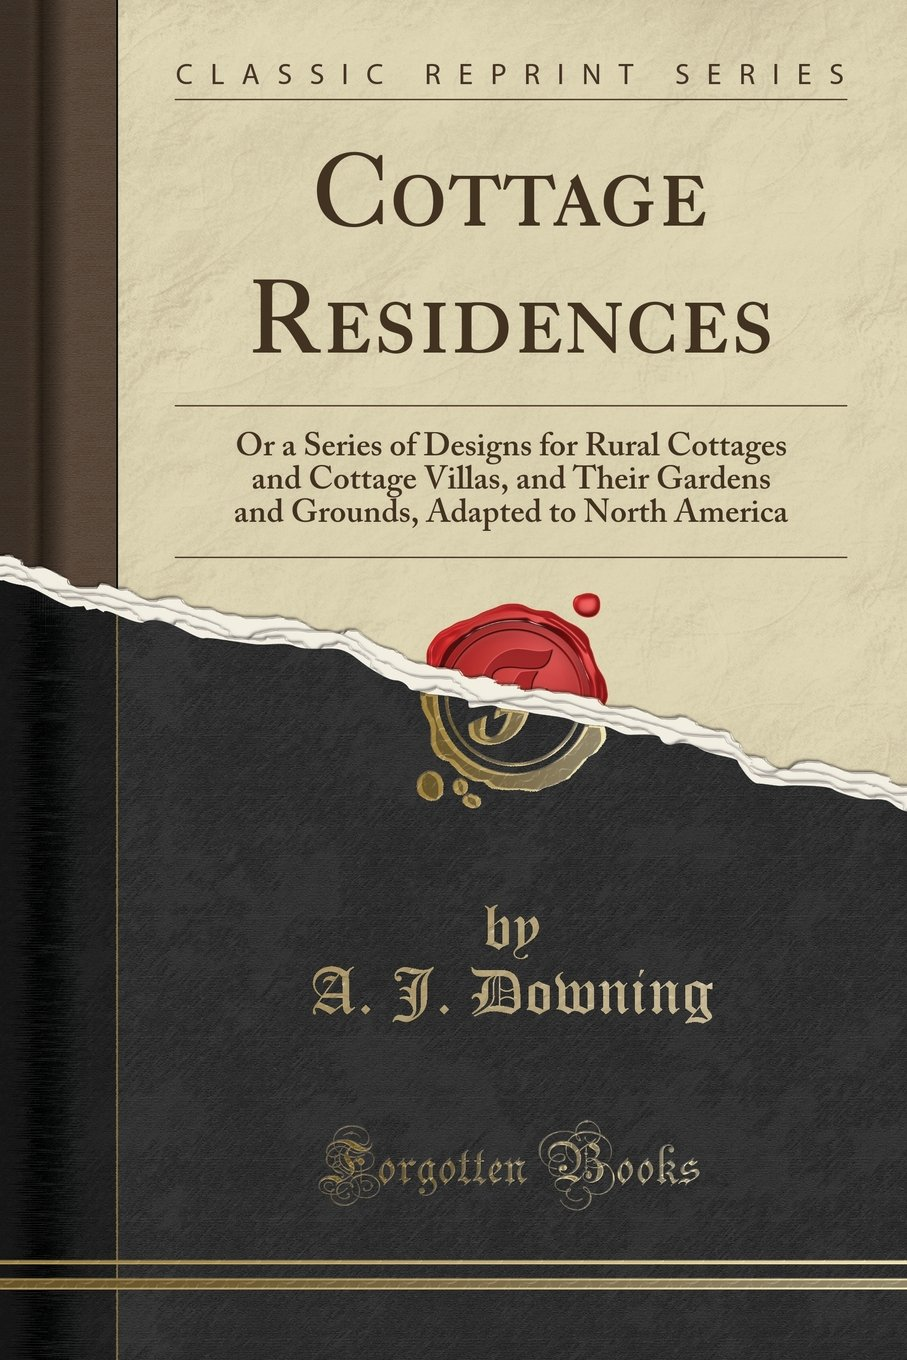 Download Cottage Residences: Or a Series of Designs for Rural Cottages and Cottage Villas, and Their Gardens and Grounds, Adapted to North America (Classic Reprint) ebook